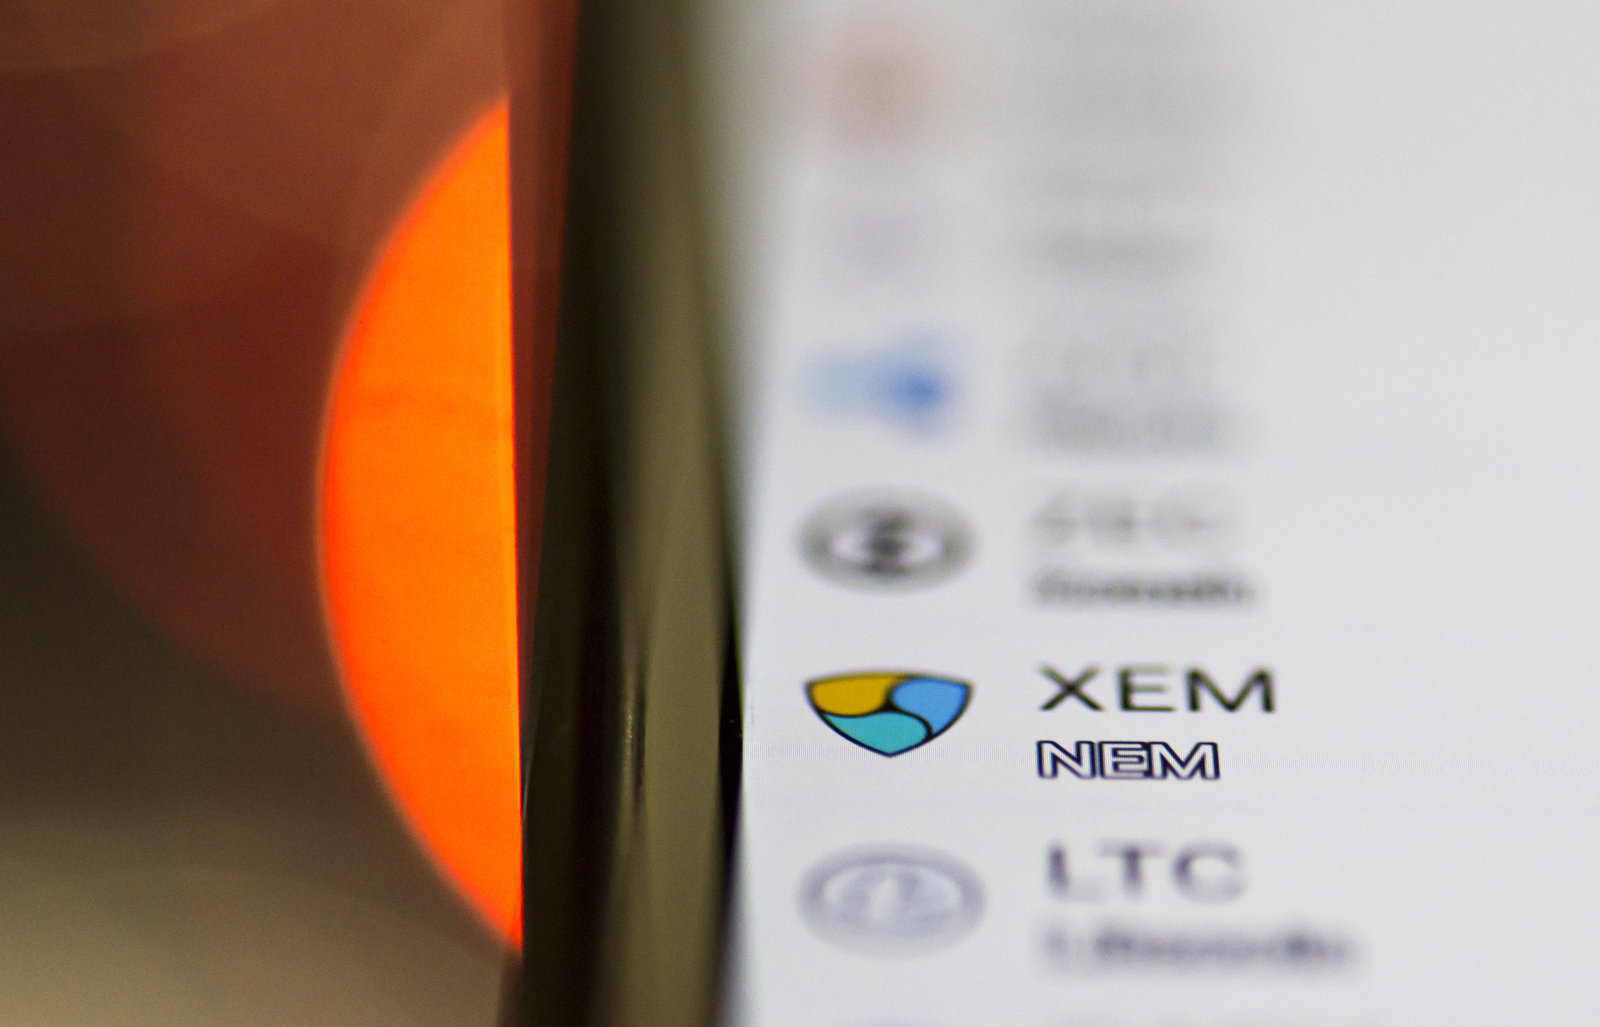 TOKYO, JAPAN - JANUARY 29: The logo of the NEM virtual currency is seen on Coincheck's cryptocurrency wallet app in this arranged photograph on January 29, 2018 in Tokyo, Japan. The Financial Services Agency (FSA) of Japan said it issued an improvement order to Coincheck, one of Japanese cryptocurrency exchanges, on January 29, 2018 after NEM coins worth 58 billion yen (approx 655 million USD) were stolen from the exchange on Friday January 26, 2018.  (Photo by Tomohiro Ohsumi/Getty Images)